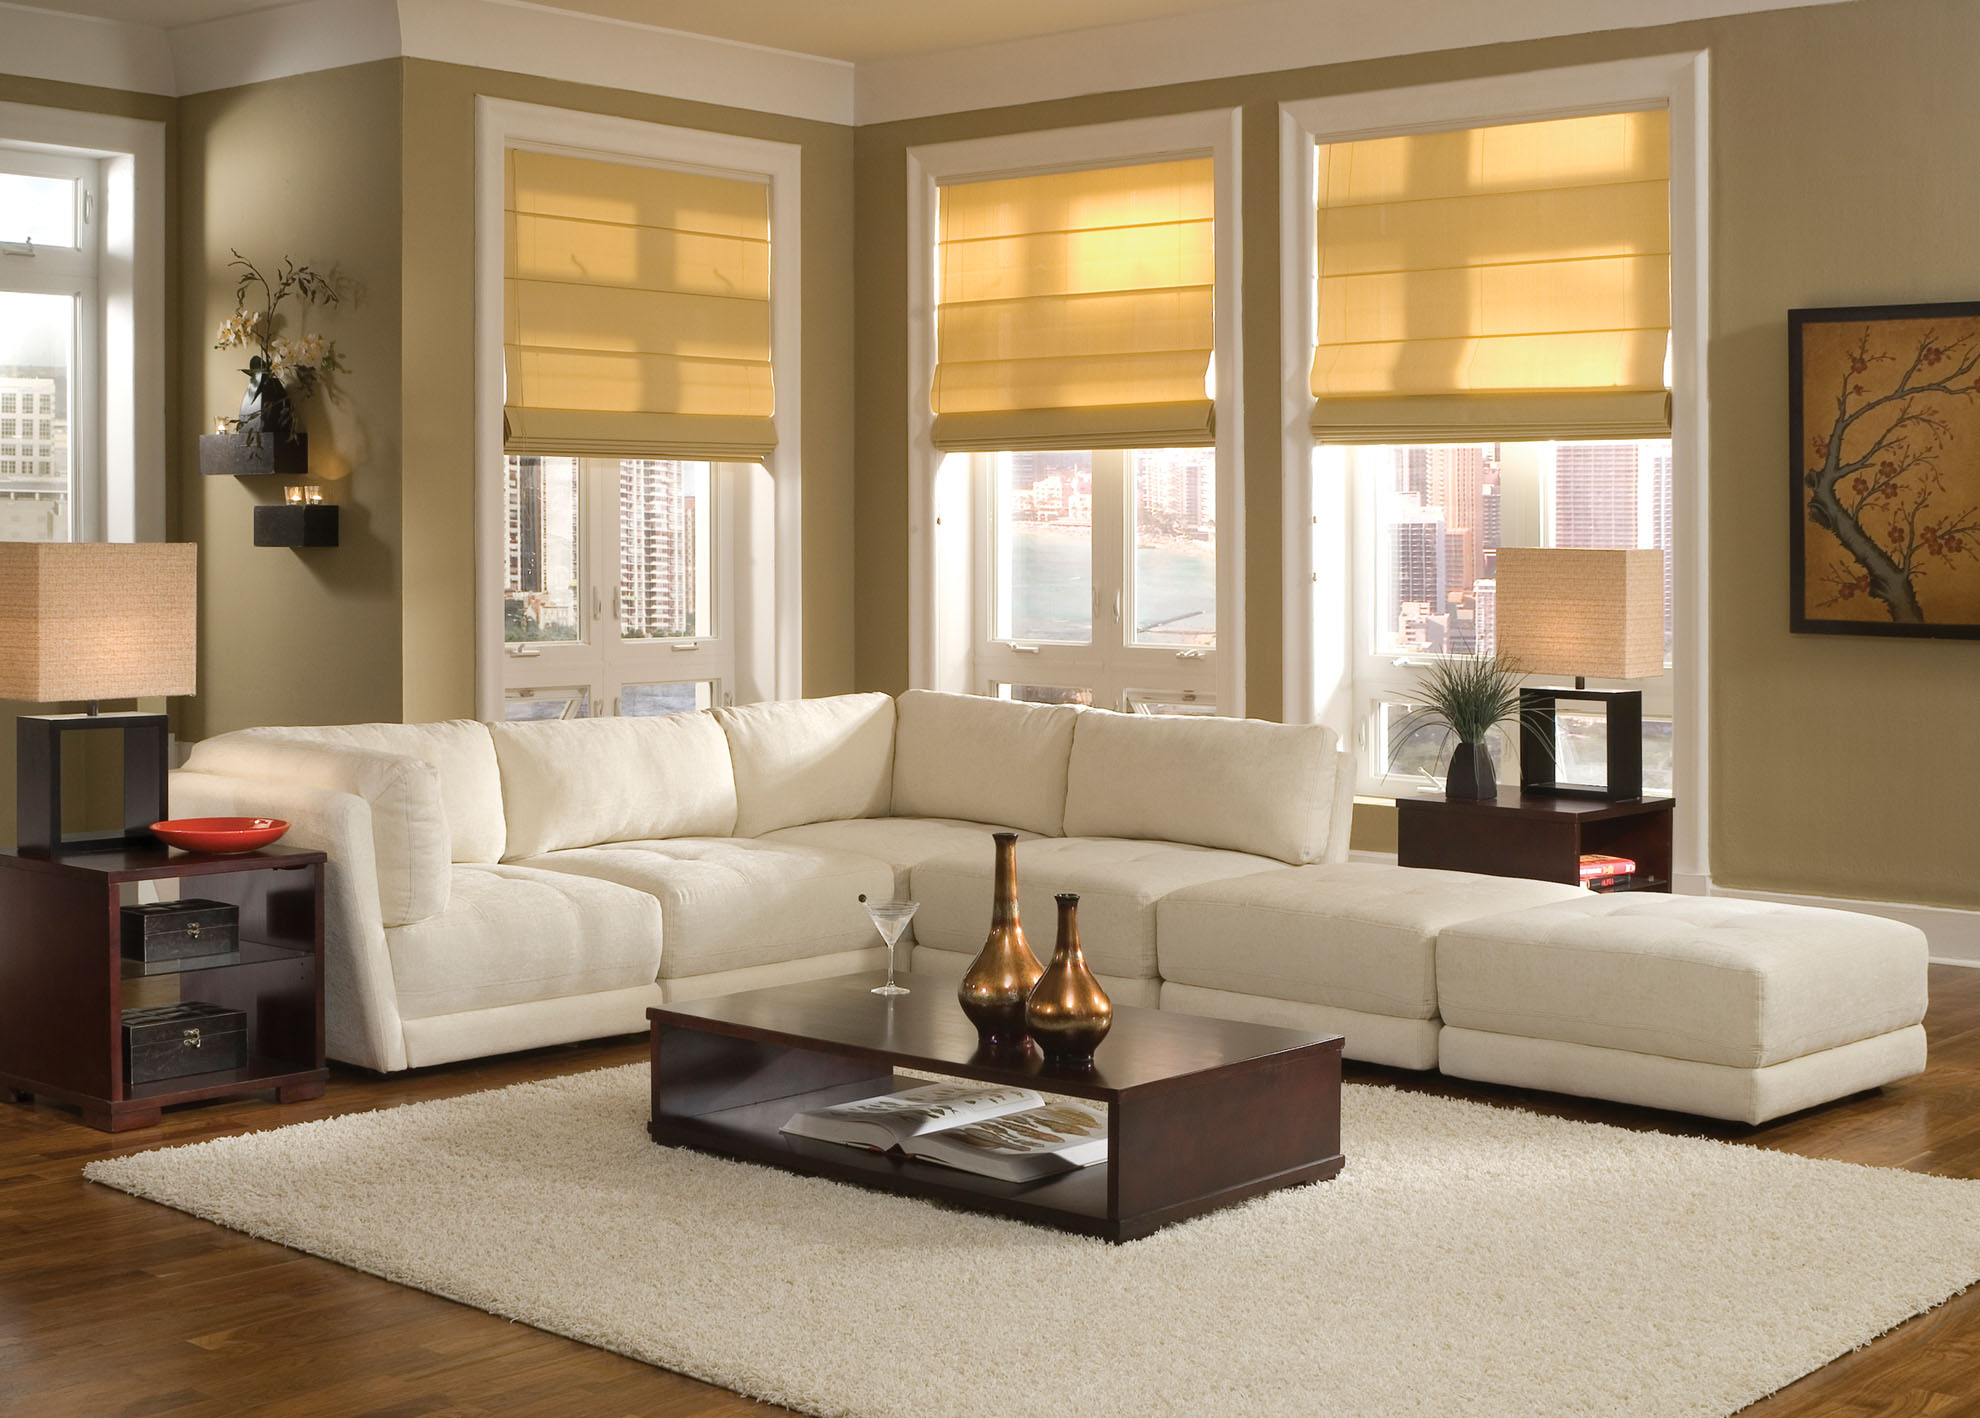 Furniture Design Sofa Livingroom Sofas White